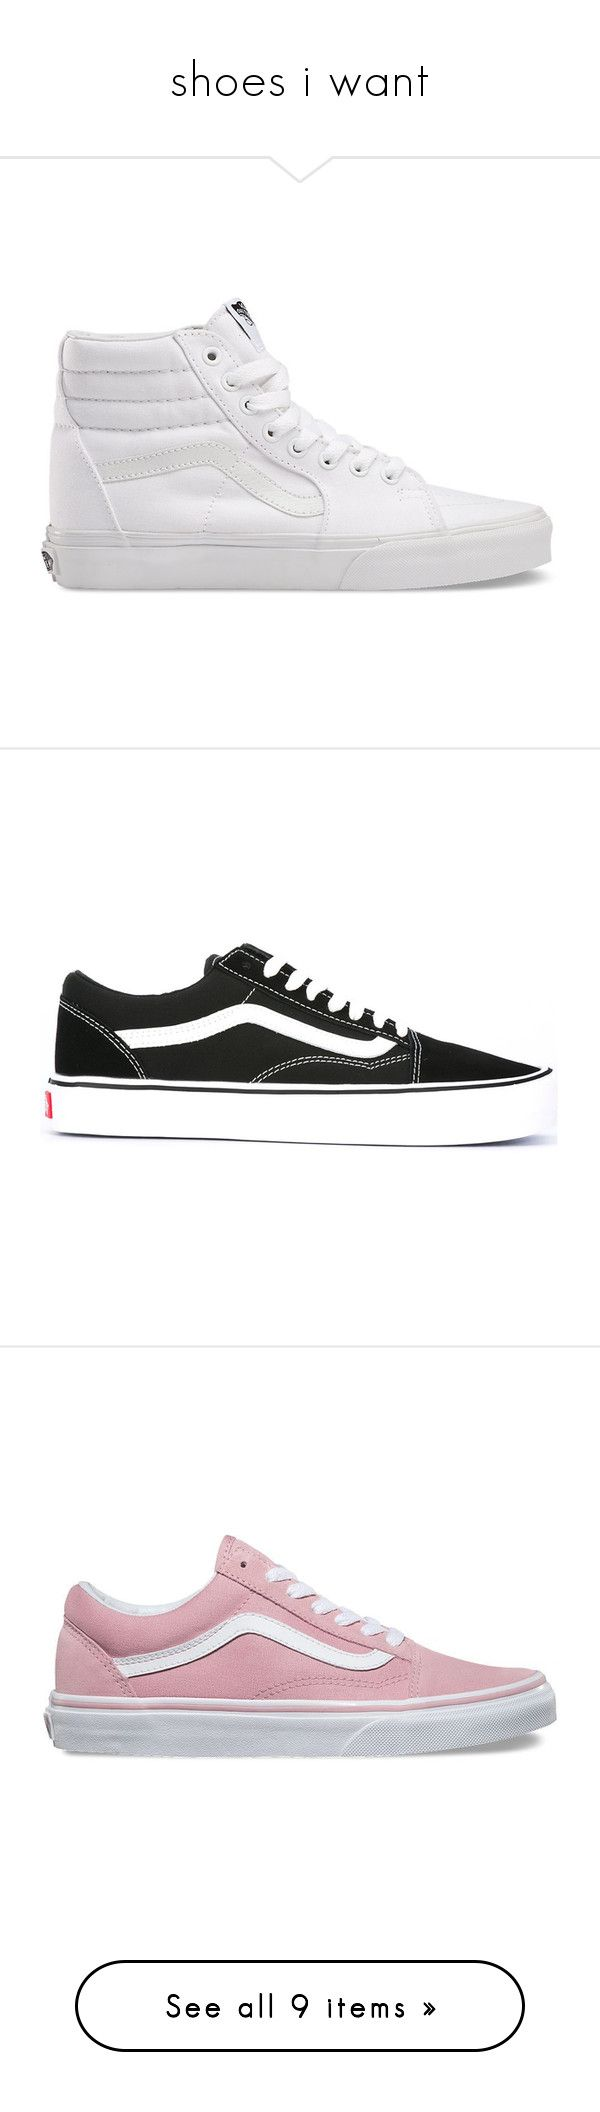 """""""shoes i want"""" by mcc625 on Polyvore featuring shoes, sneakers, vans, momma shoes, trainers, white, true white, vans high tops, vans sneakers and white high top sneakers"""